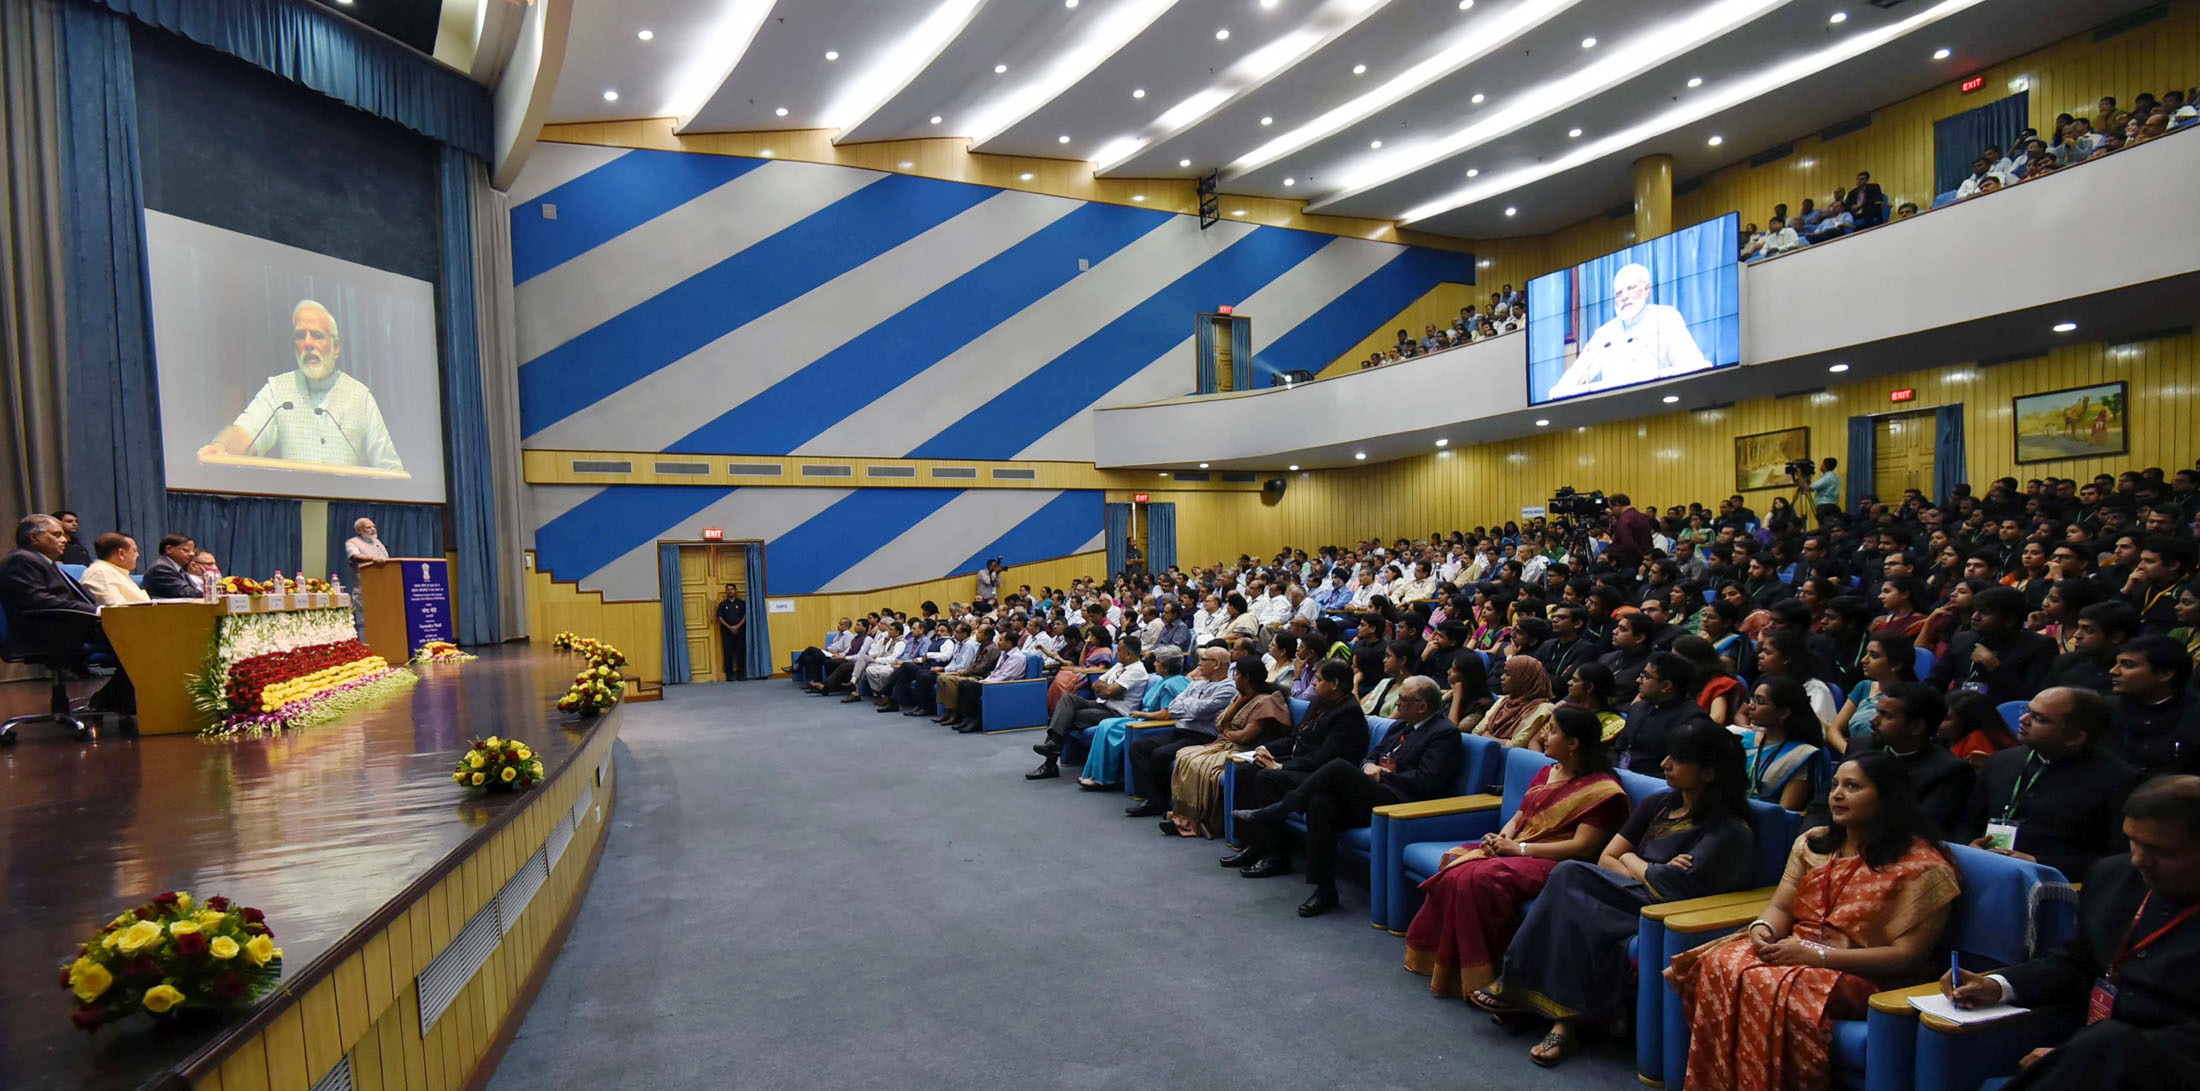 The Prime Minister, Shri Narendra Modi addressing the Valedictory Session of Assistant Secretaries (IAS Officers of 2015 batch), at DRDO Bhawan, in New Delhi on September 26, 2017.